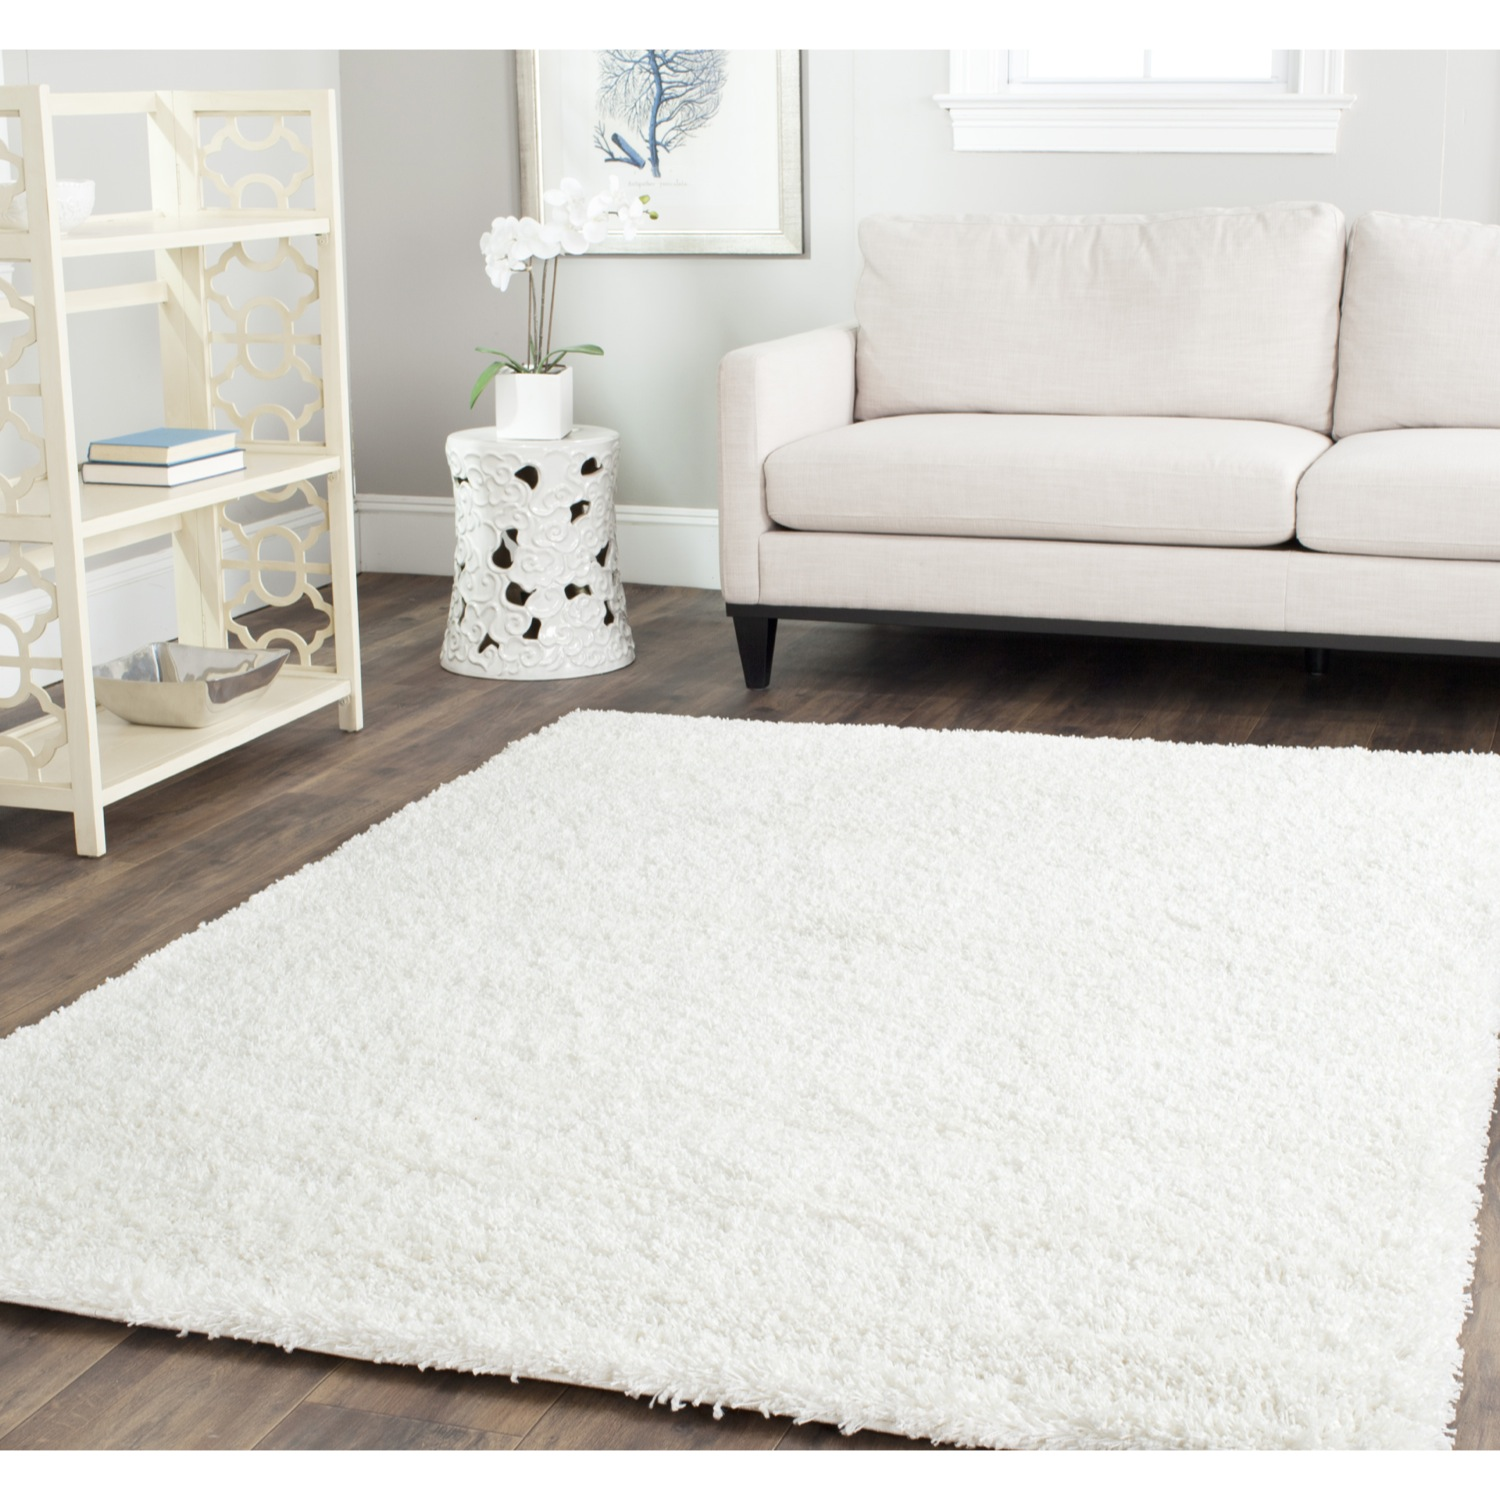 charming square shag rugs in white on wooden floor plus white sofa and antique white rack for living room decor ideas